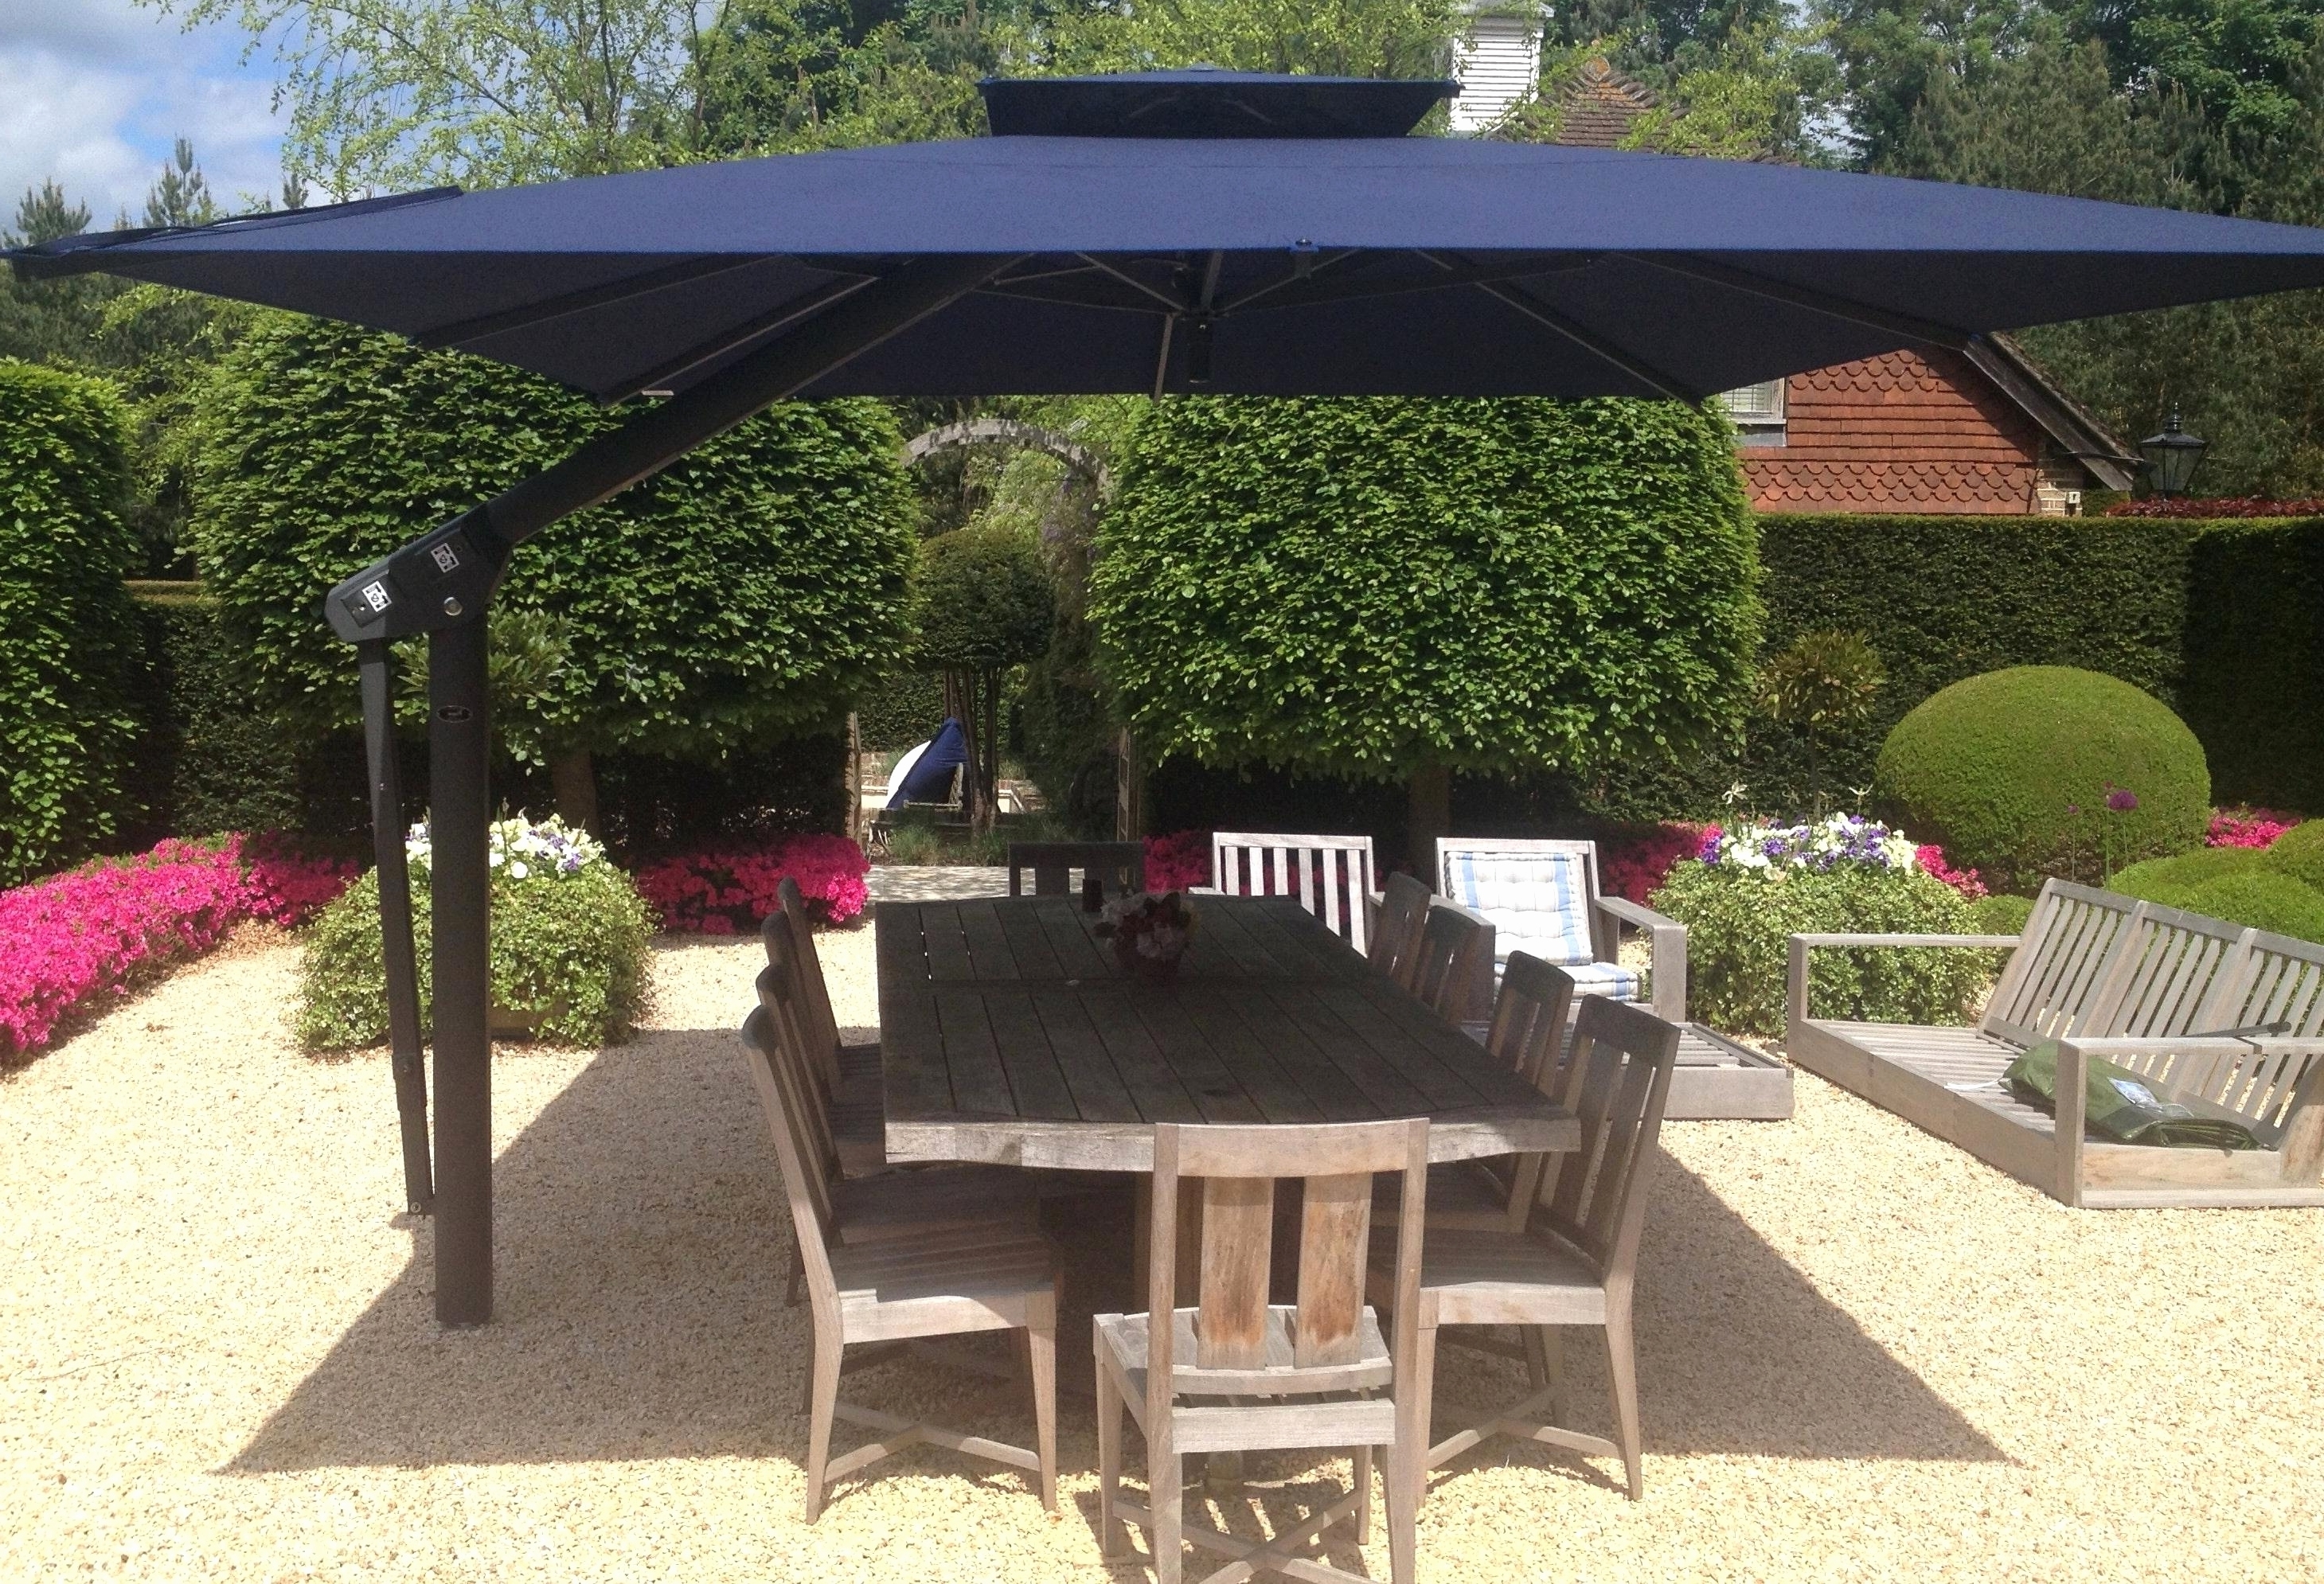 Small Patio Umbrellas Pertaining To Best And Newest Small Patio Umbrella Part 2 Outdoor Umbrellas – Theestatesga (View 16 of 20)